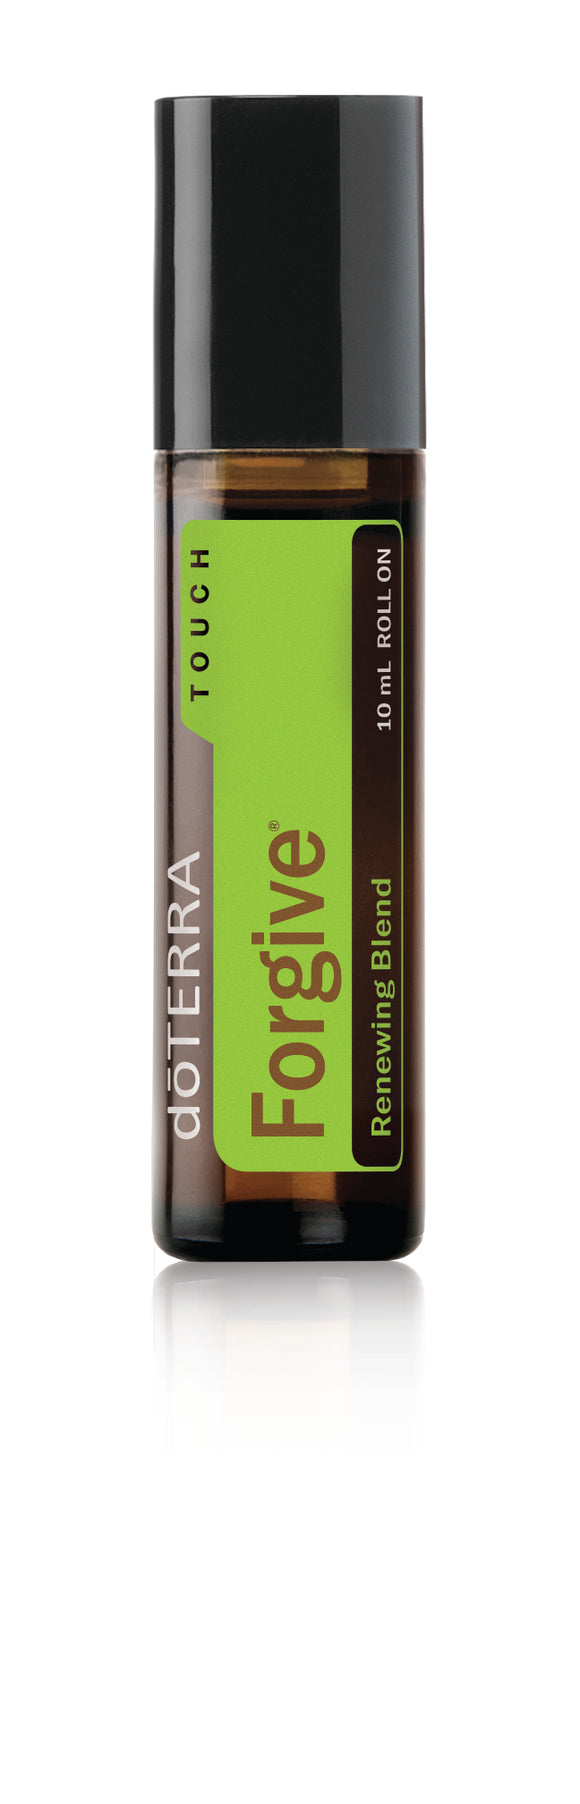 dōTERRA Forgive Touch 10ml - CUSTOM AND ESSENTIALS